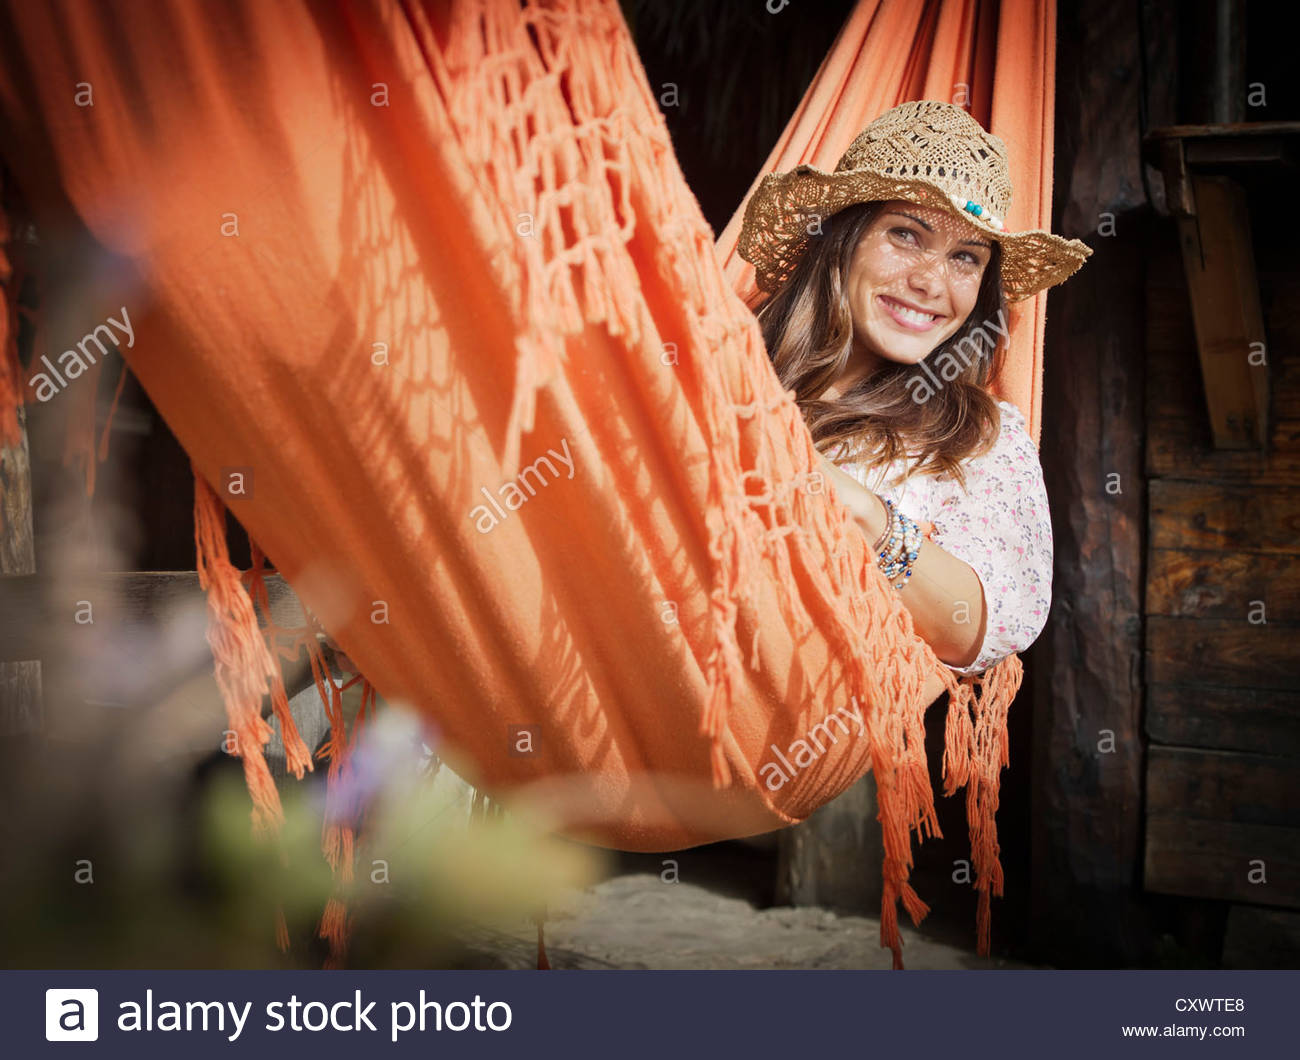 Woman in sunhat relaxing in hammock - Stock Image